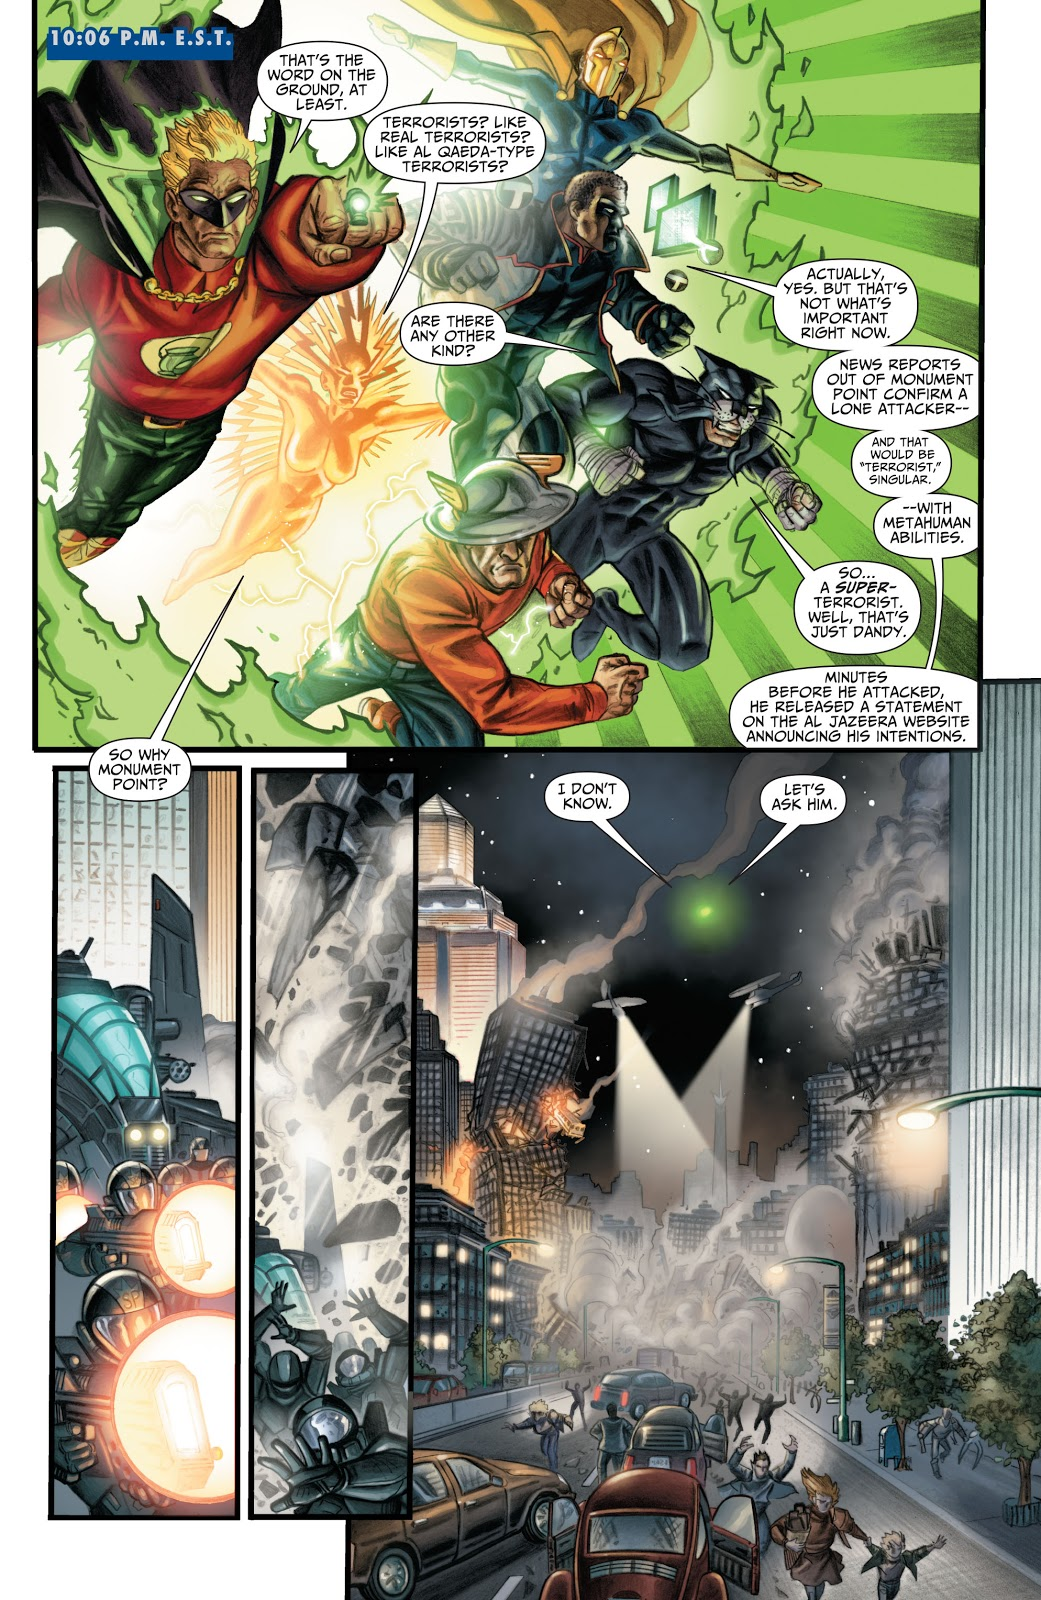 Justice Society of America Supertown review